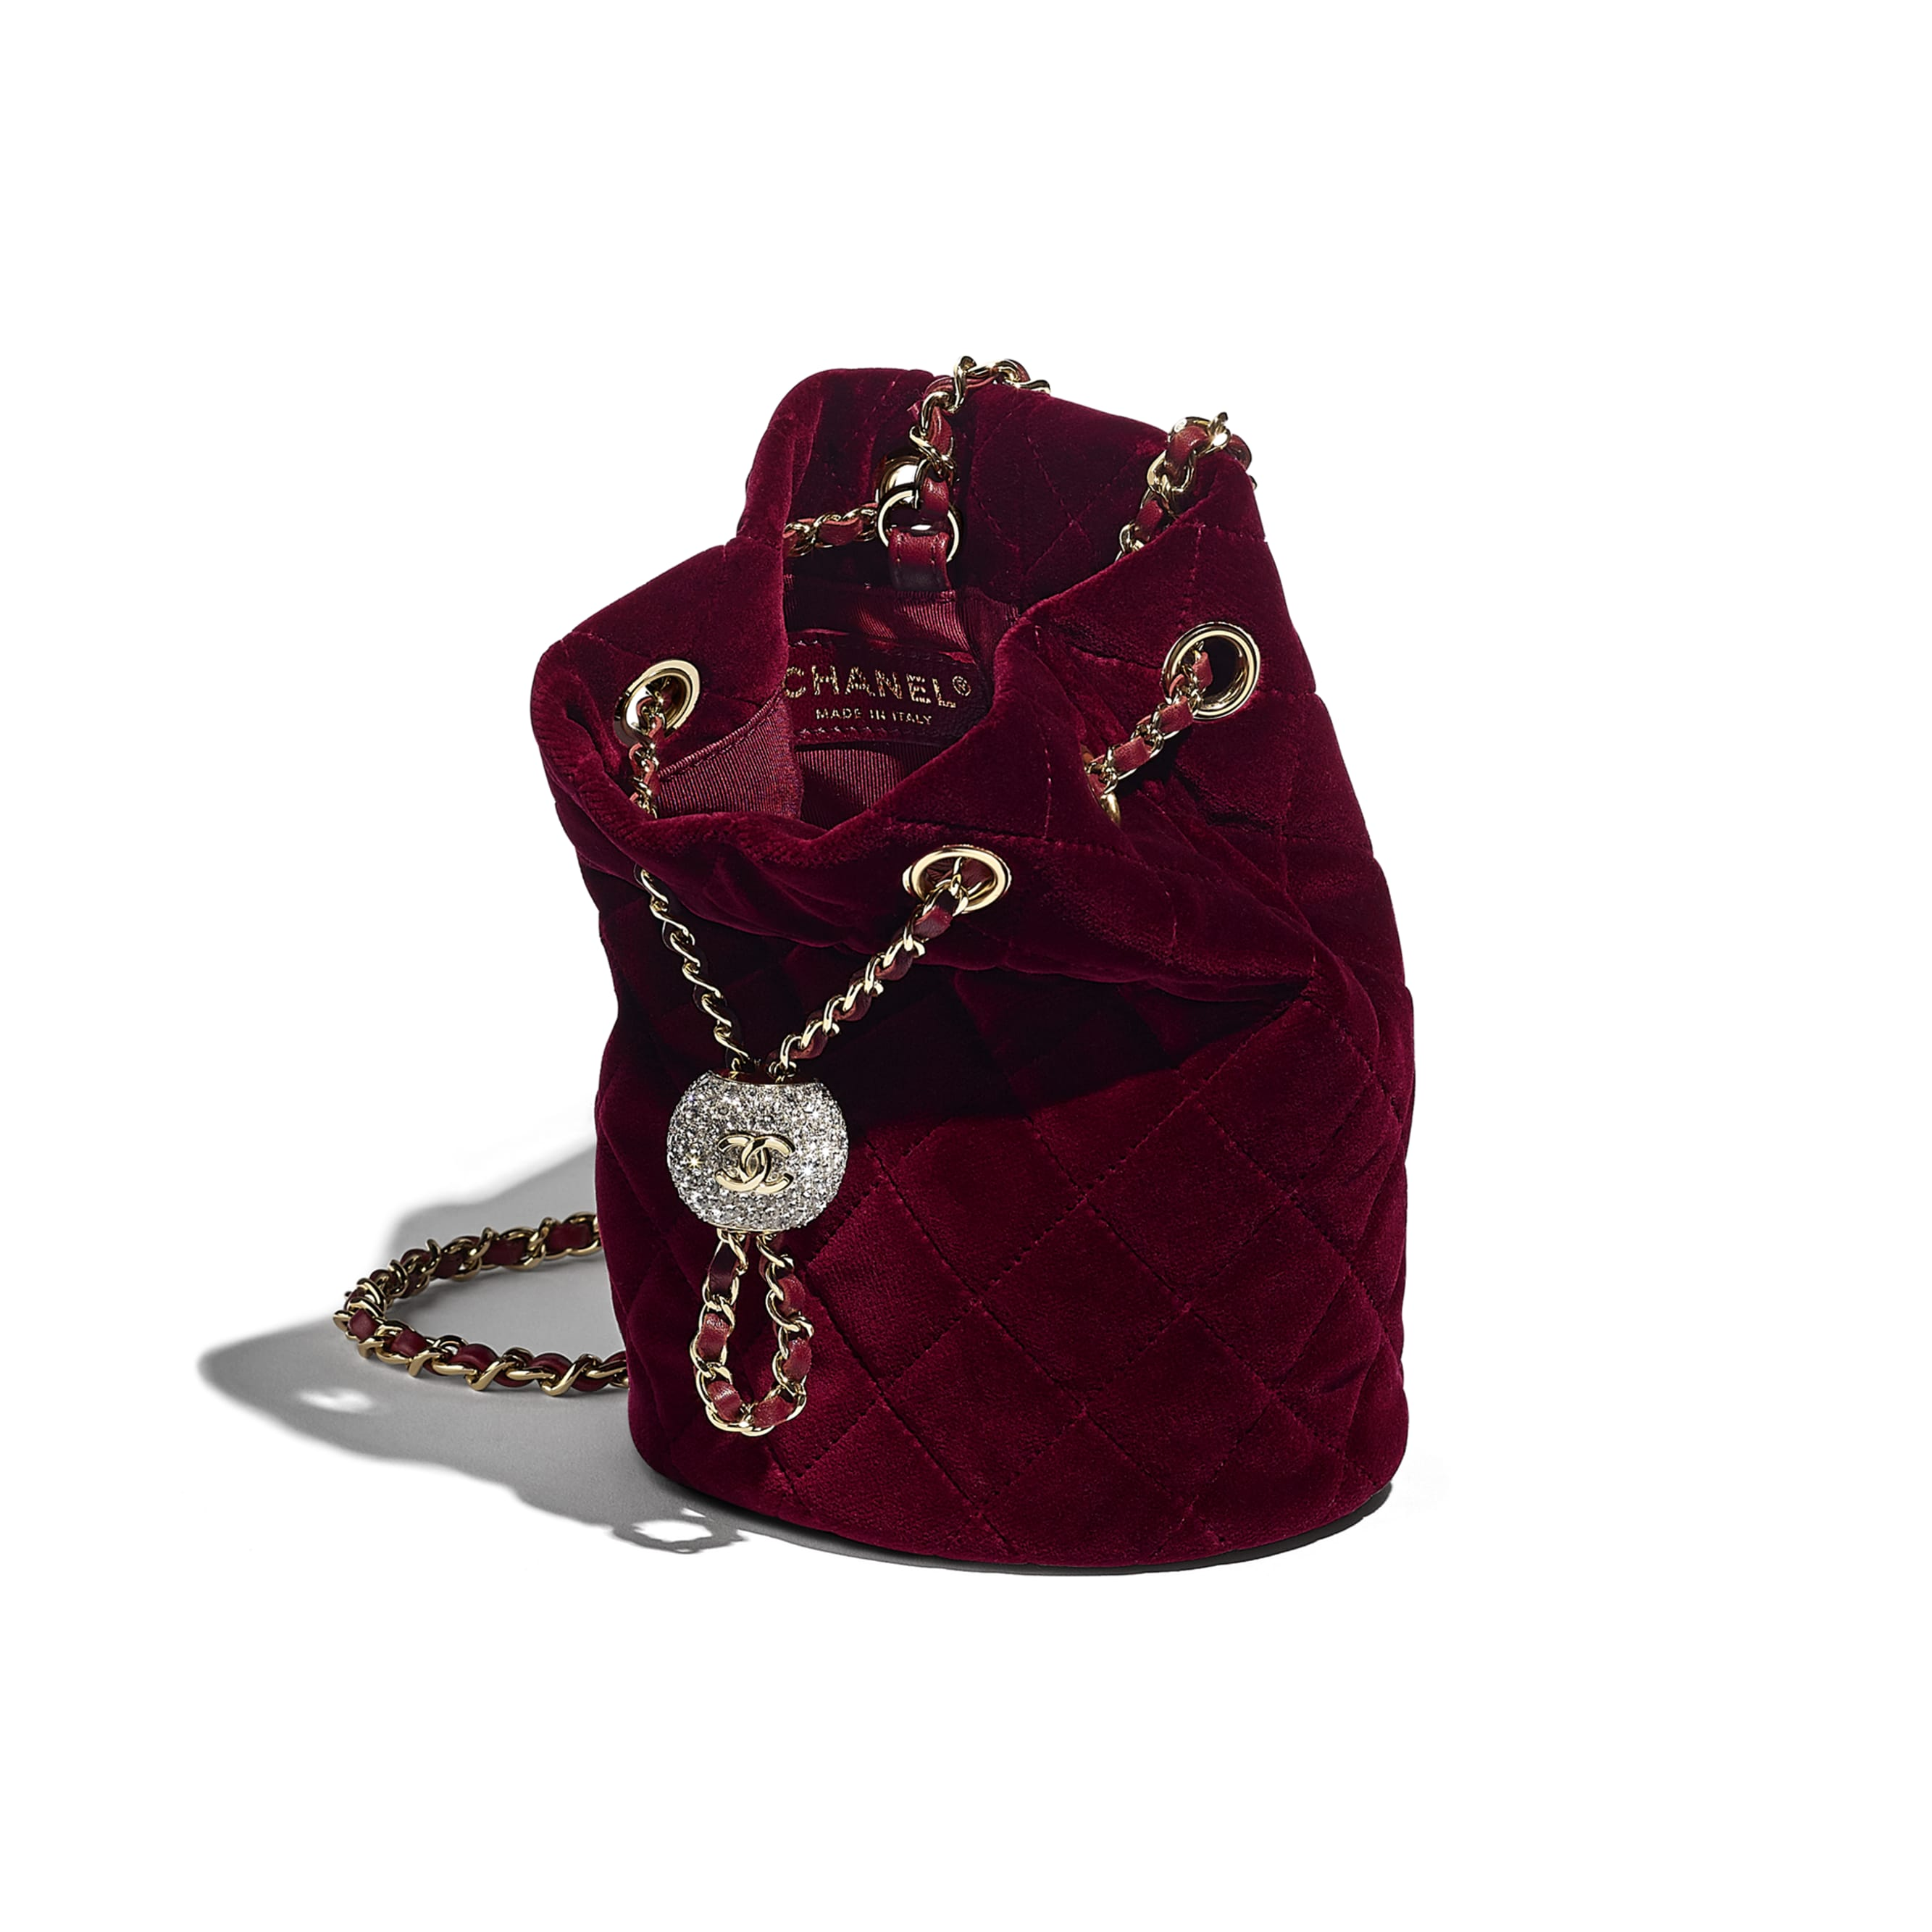 Drawstring Bag - Burgundy - Velvet, Diamanté & Silver-Tone Metal - CHANEL - Other view - see standard sized version